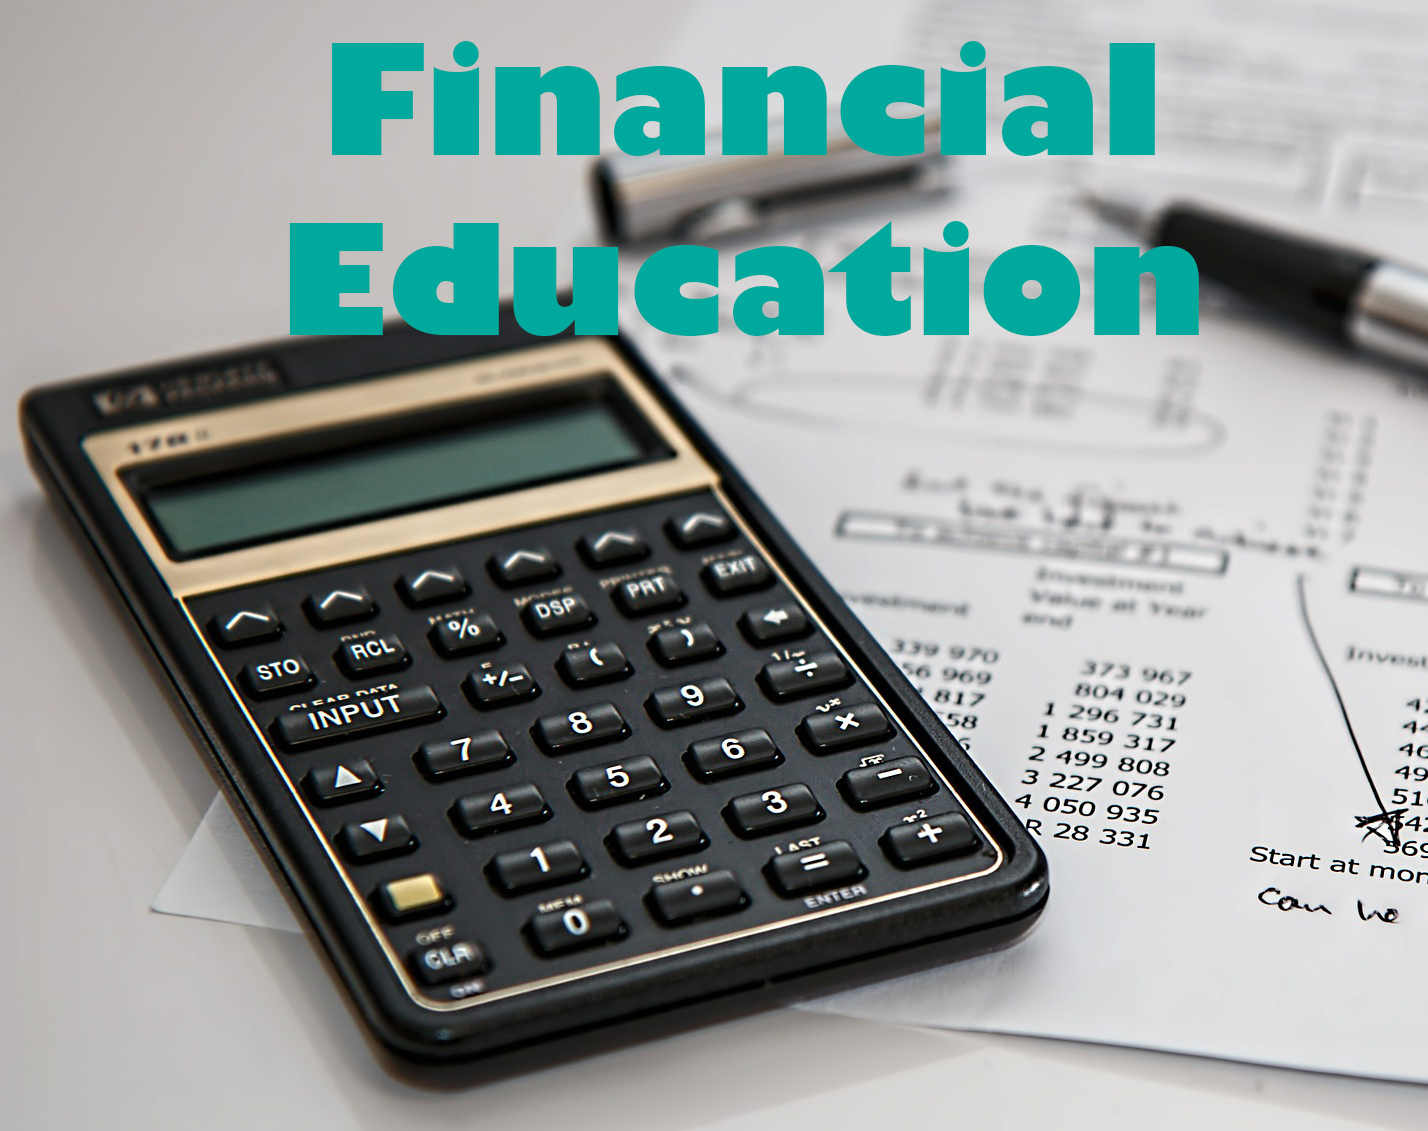 uploads/category/Financial Education